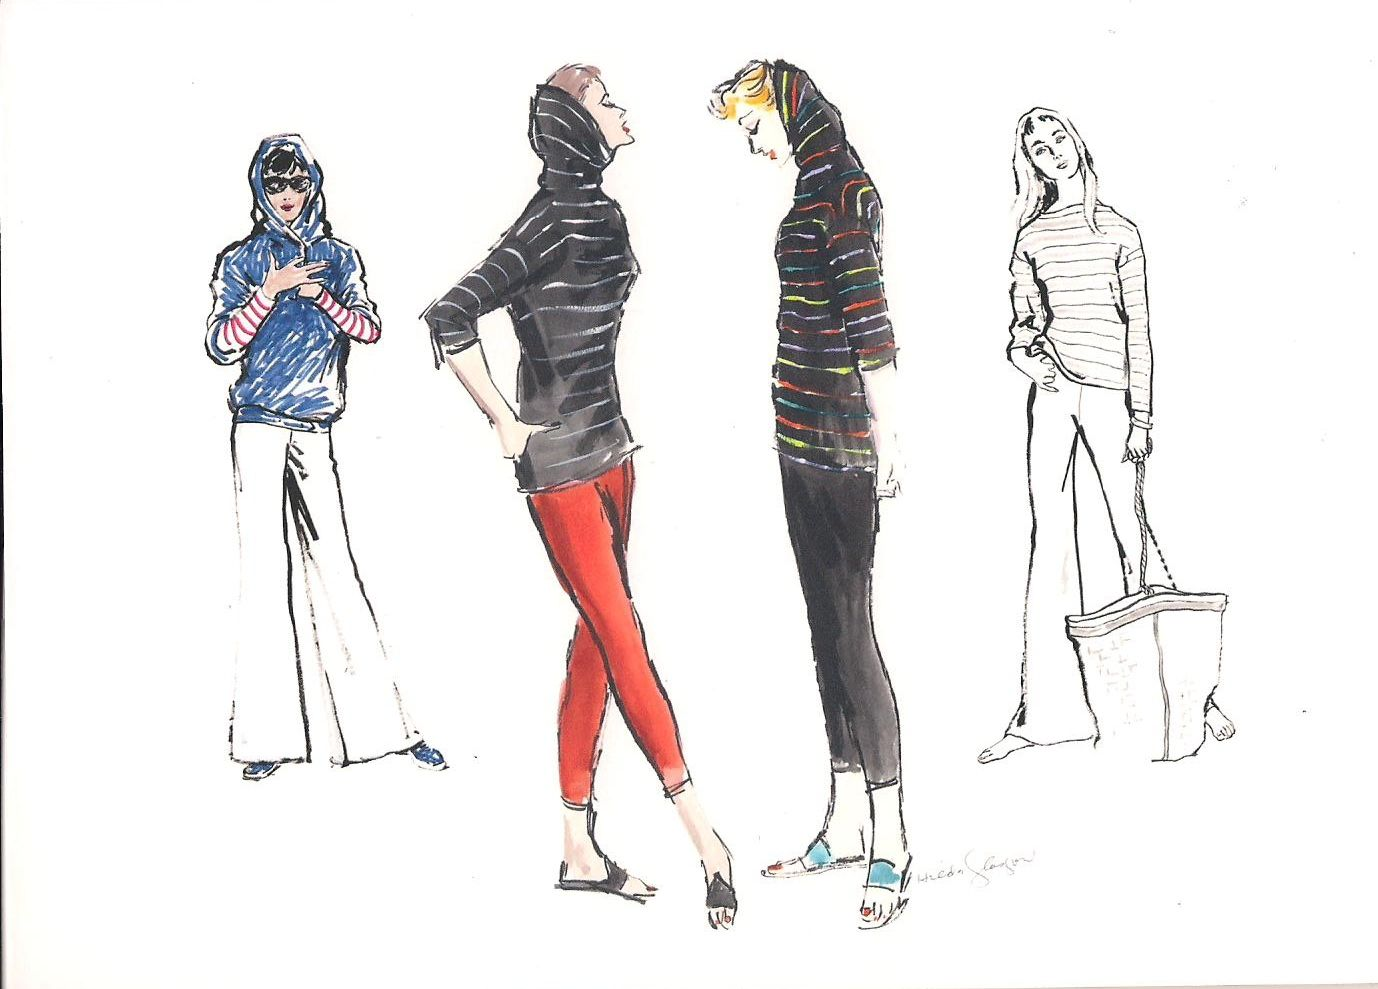 Vintage original fashion illustrations from The White Cabinet